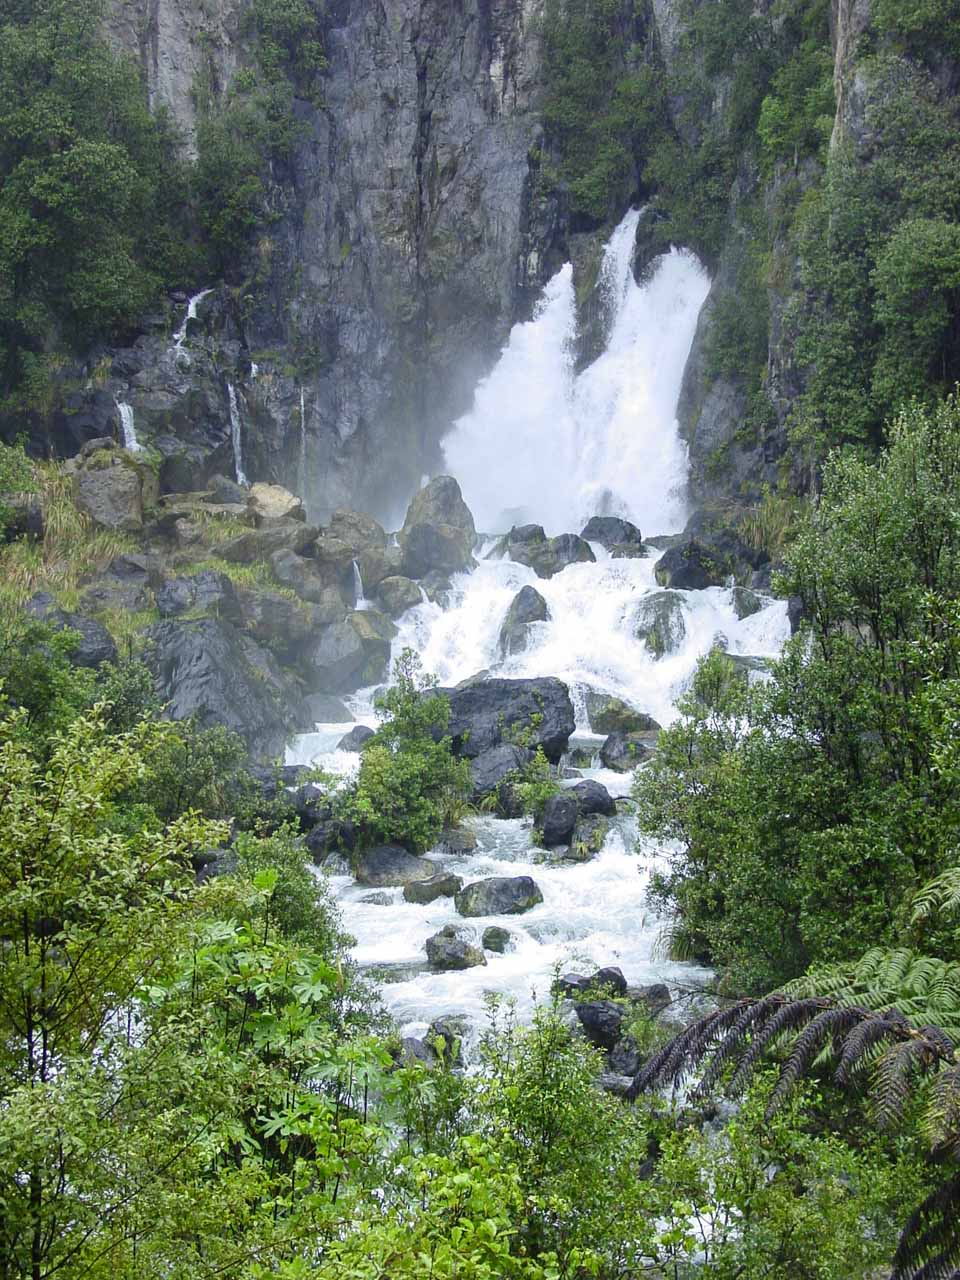 A more focused look at Tarawera Falls